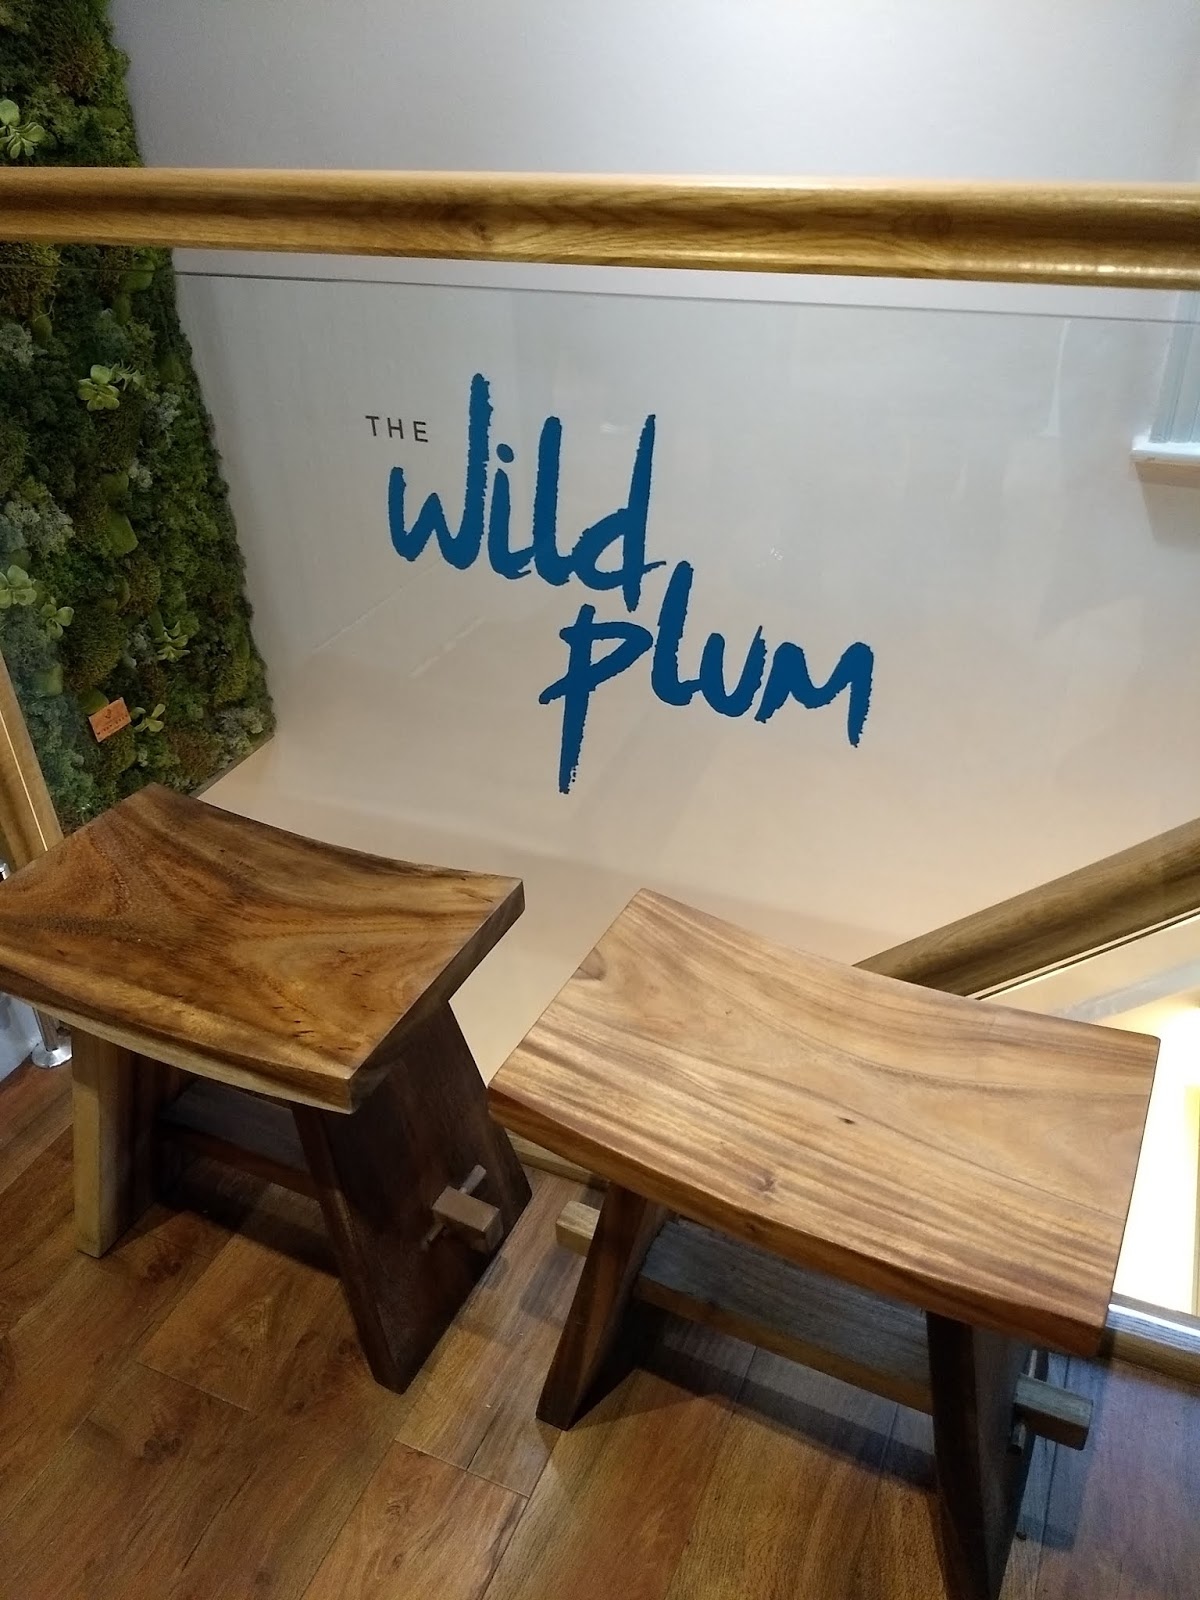 Image of Staircase in the wild plum.